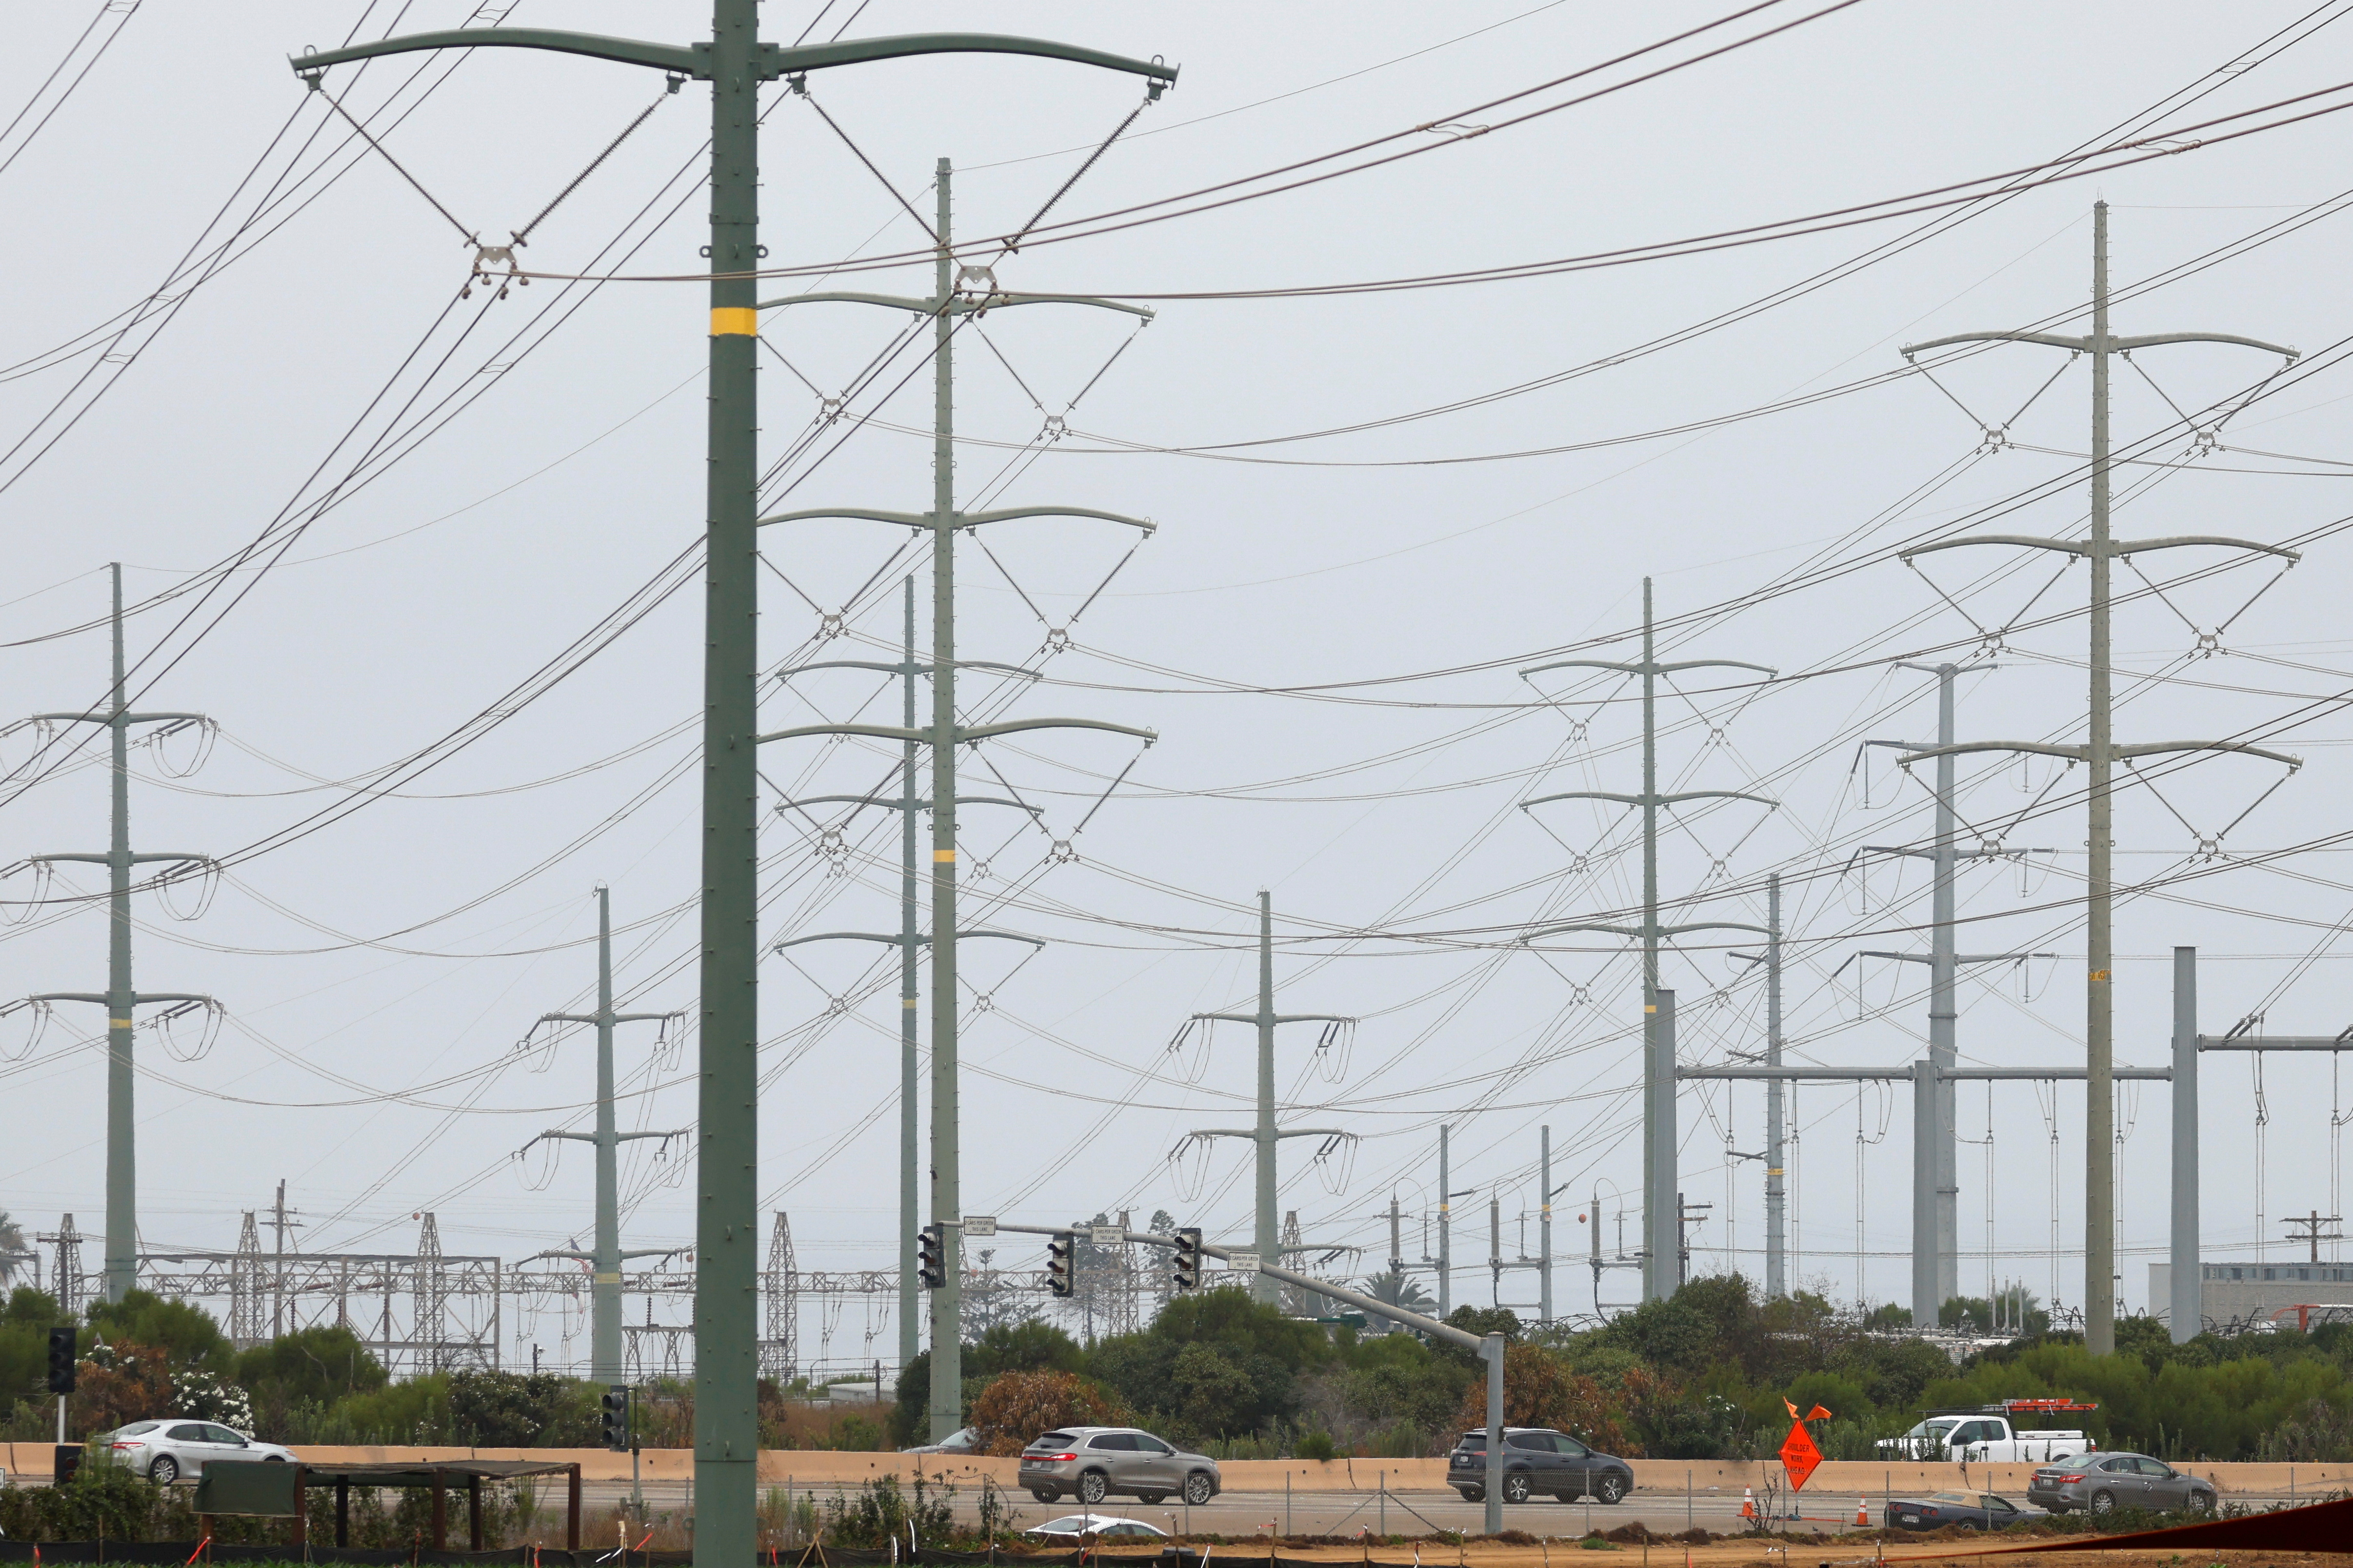 Power lines are shown as California consumers prepare for more possible outages following weekend outages to reduce system strain during a brutal heat wave amid the outbreak of coronavirus disease (COVID-19) in Carlsbad, California, U.S., August 17, 2020. REUTERS/Mike Blake/File Photo